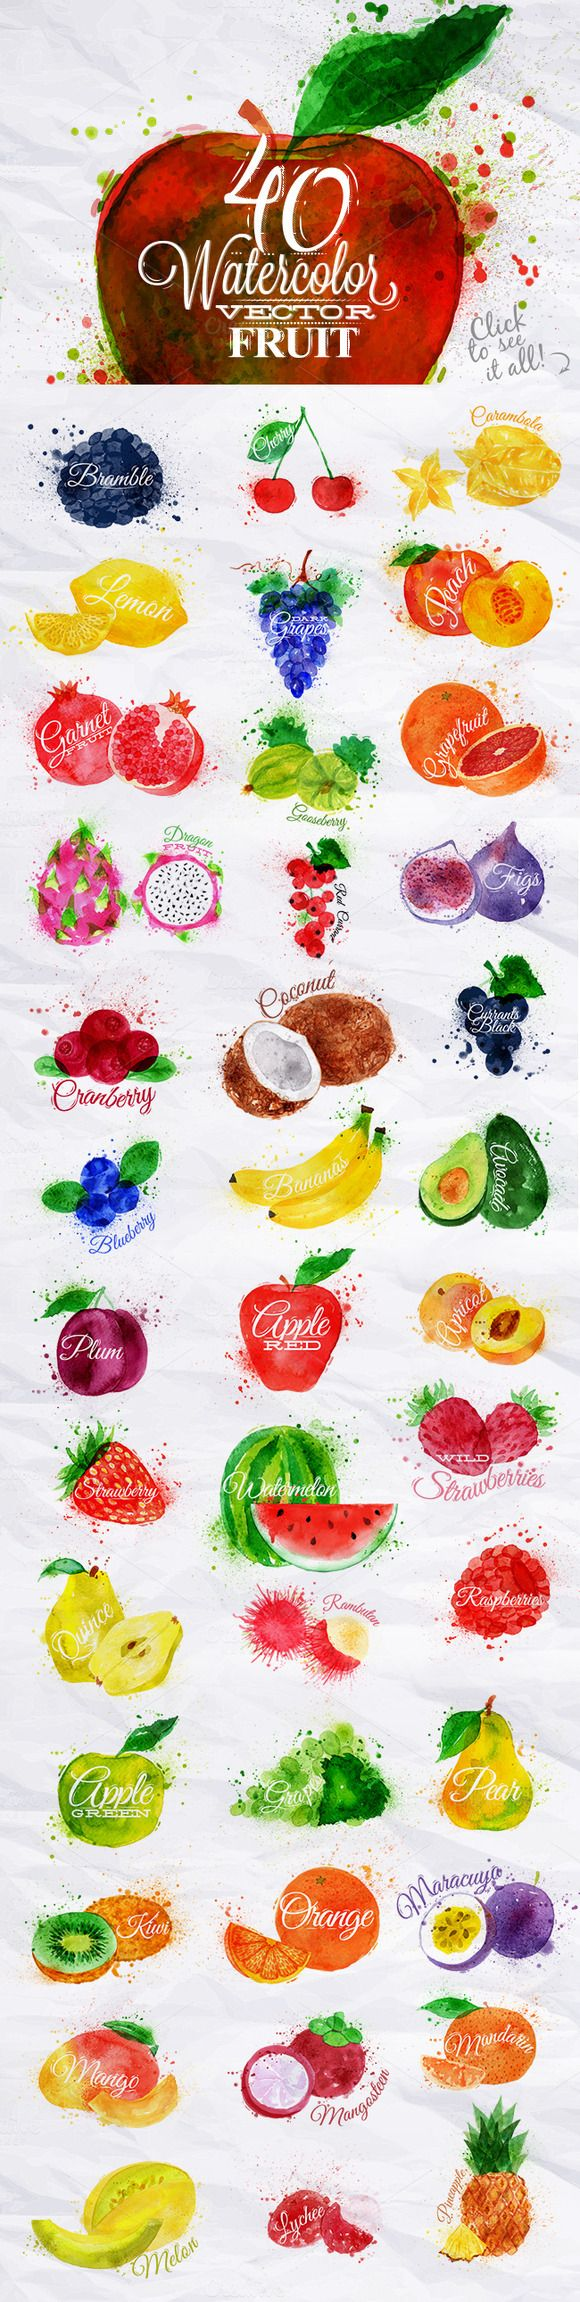 Fruit Watercolor by Anna on Creative Market | Creative ...